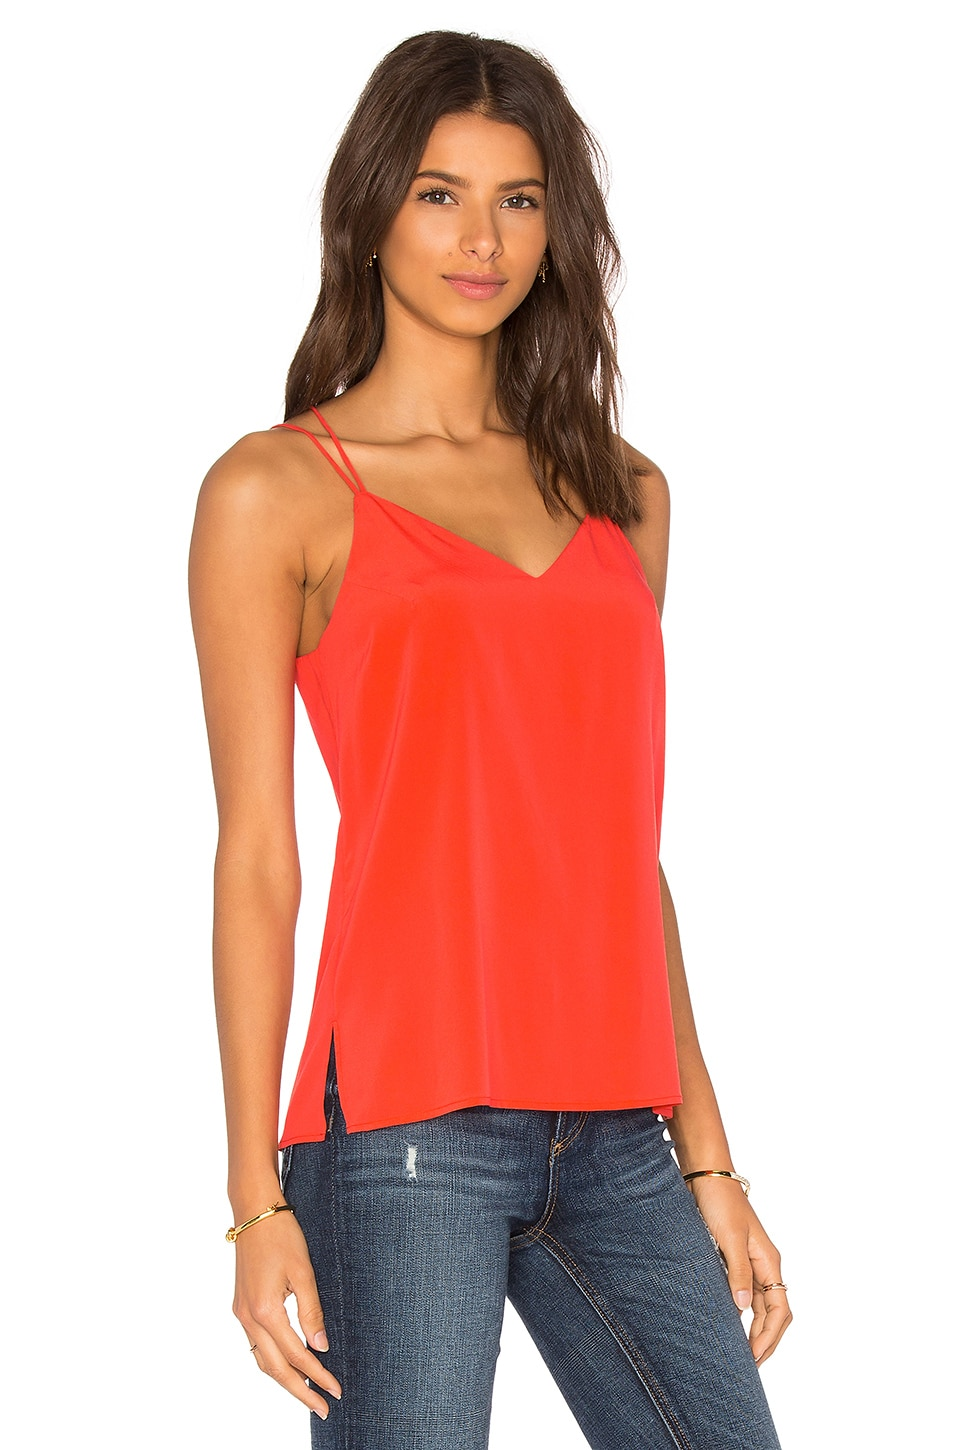 Bella Luxx Cross Back Spaghetti Cami in Coral Reef